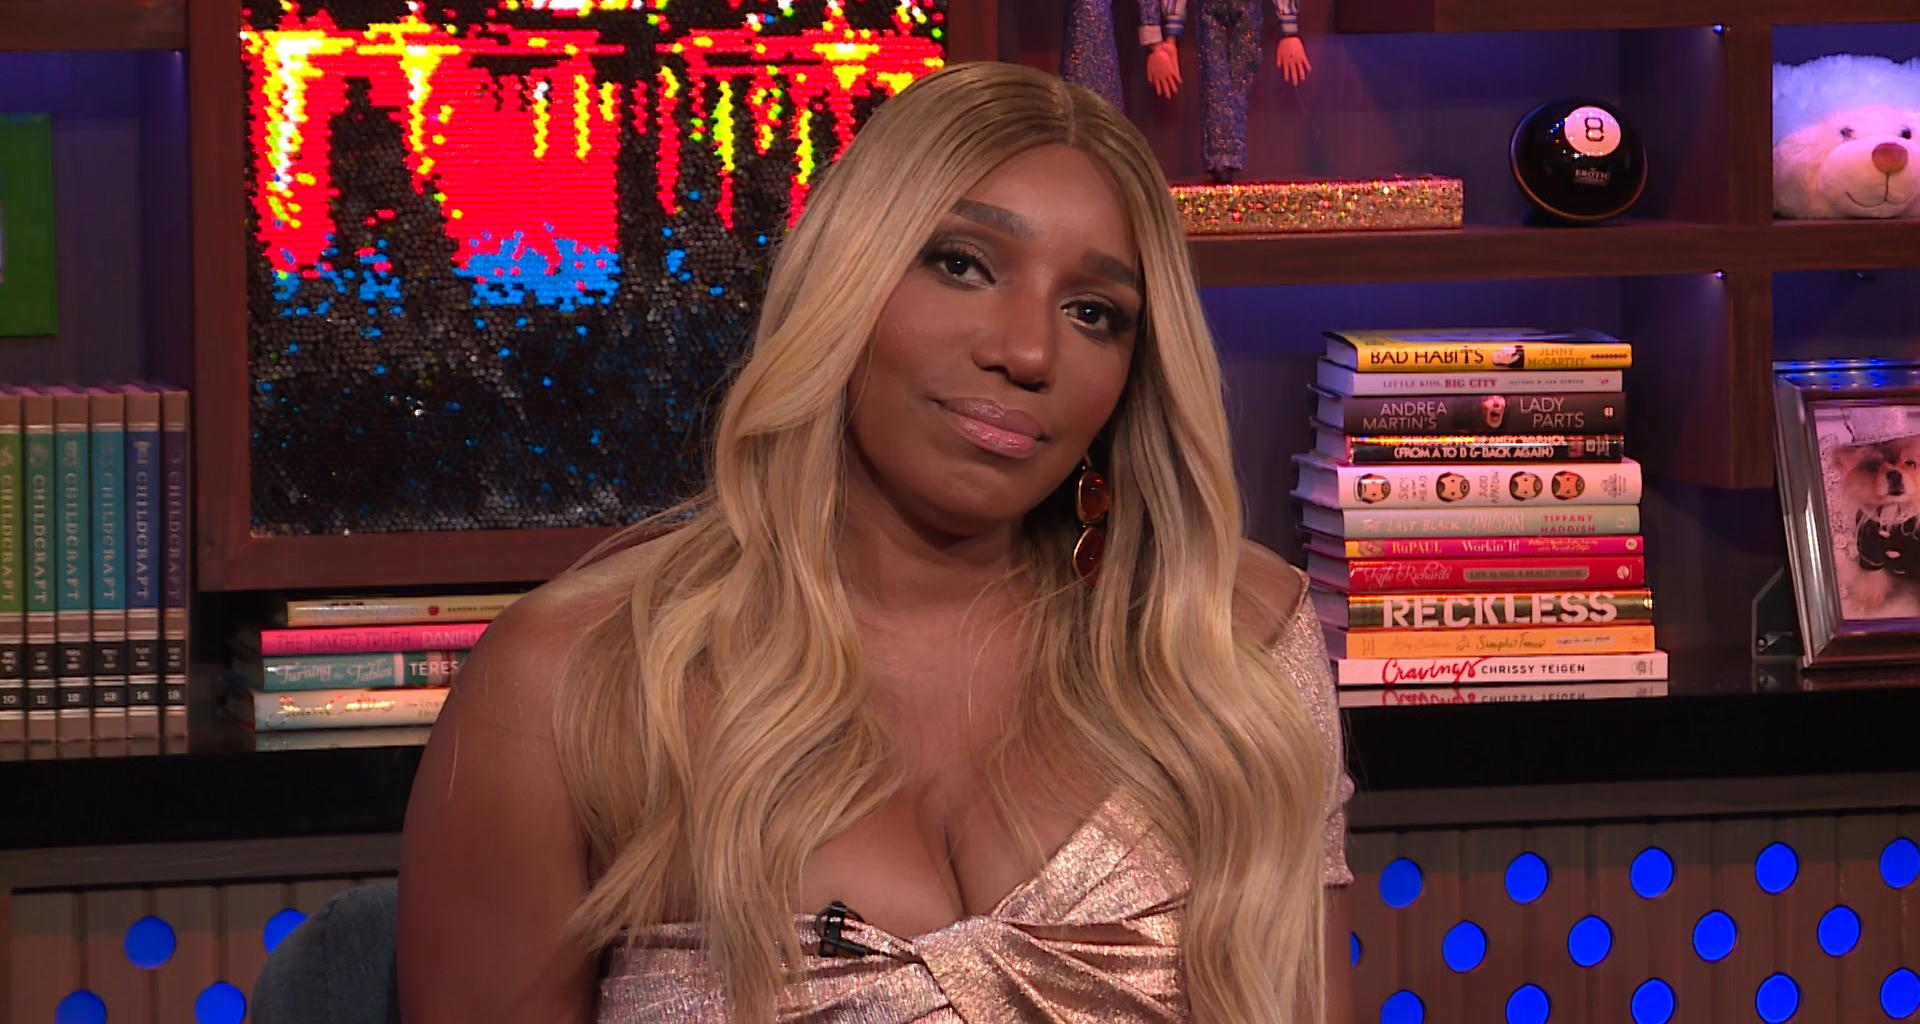 NeNe Leakes' Fans Are Grateful To Her For Teaching Them How To 'Turn Tragedy Into Triumph' - See NeNe's Video